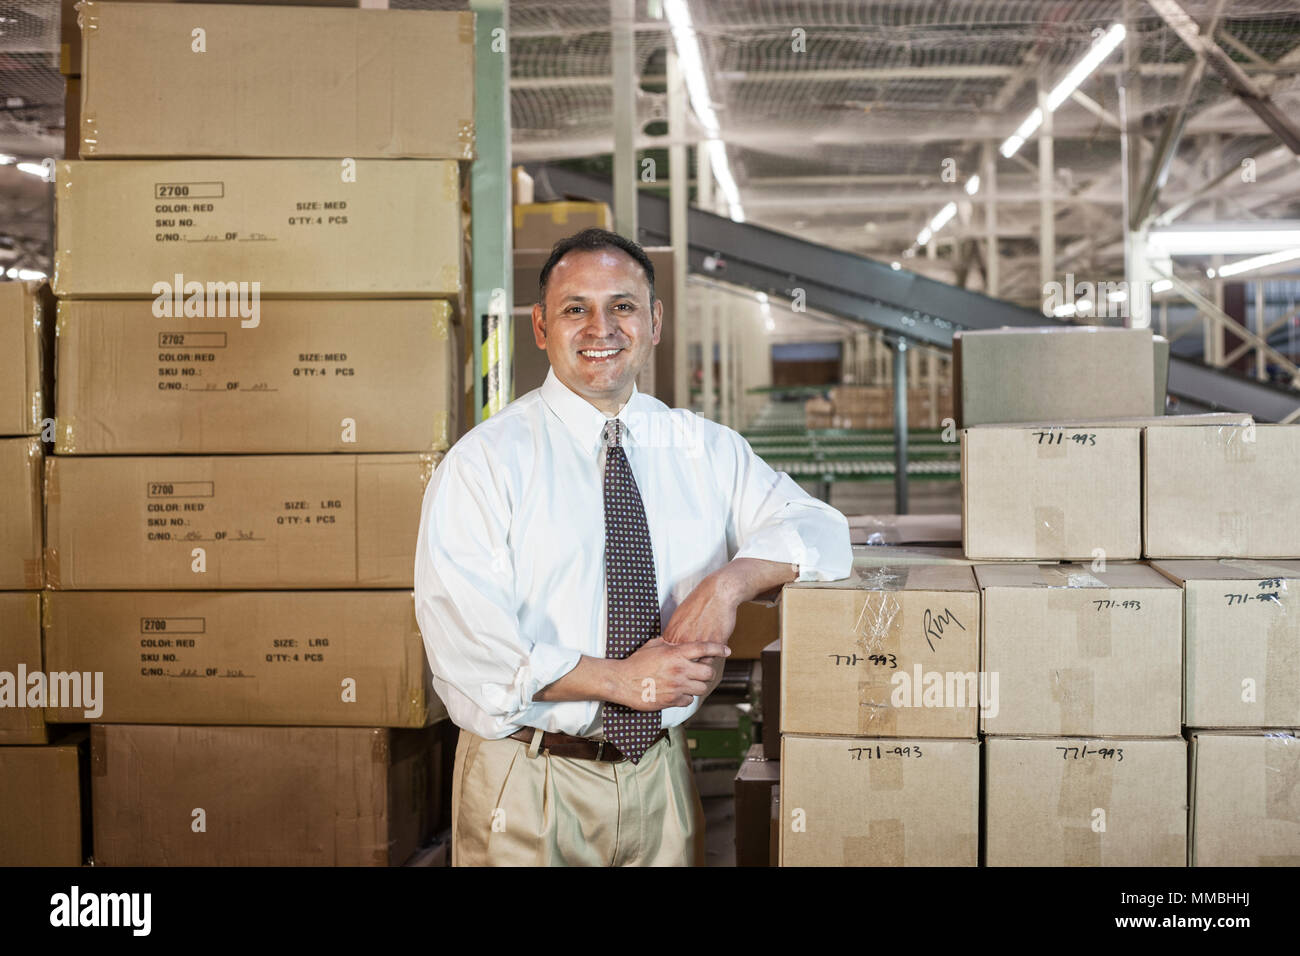 Portrait of a male Hispanic American executive in a shirt and tie surrounded by products stored in cardboard boxes  in a large distribution warehouse. - Stock Image